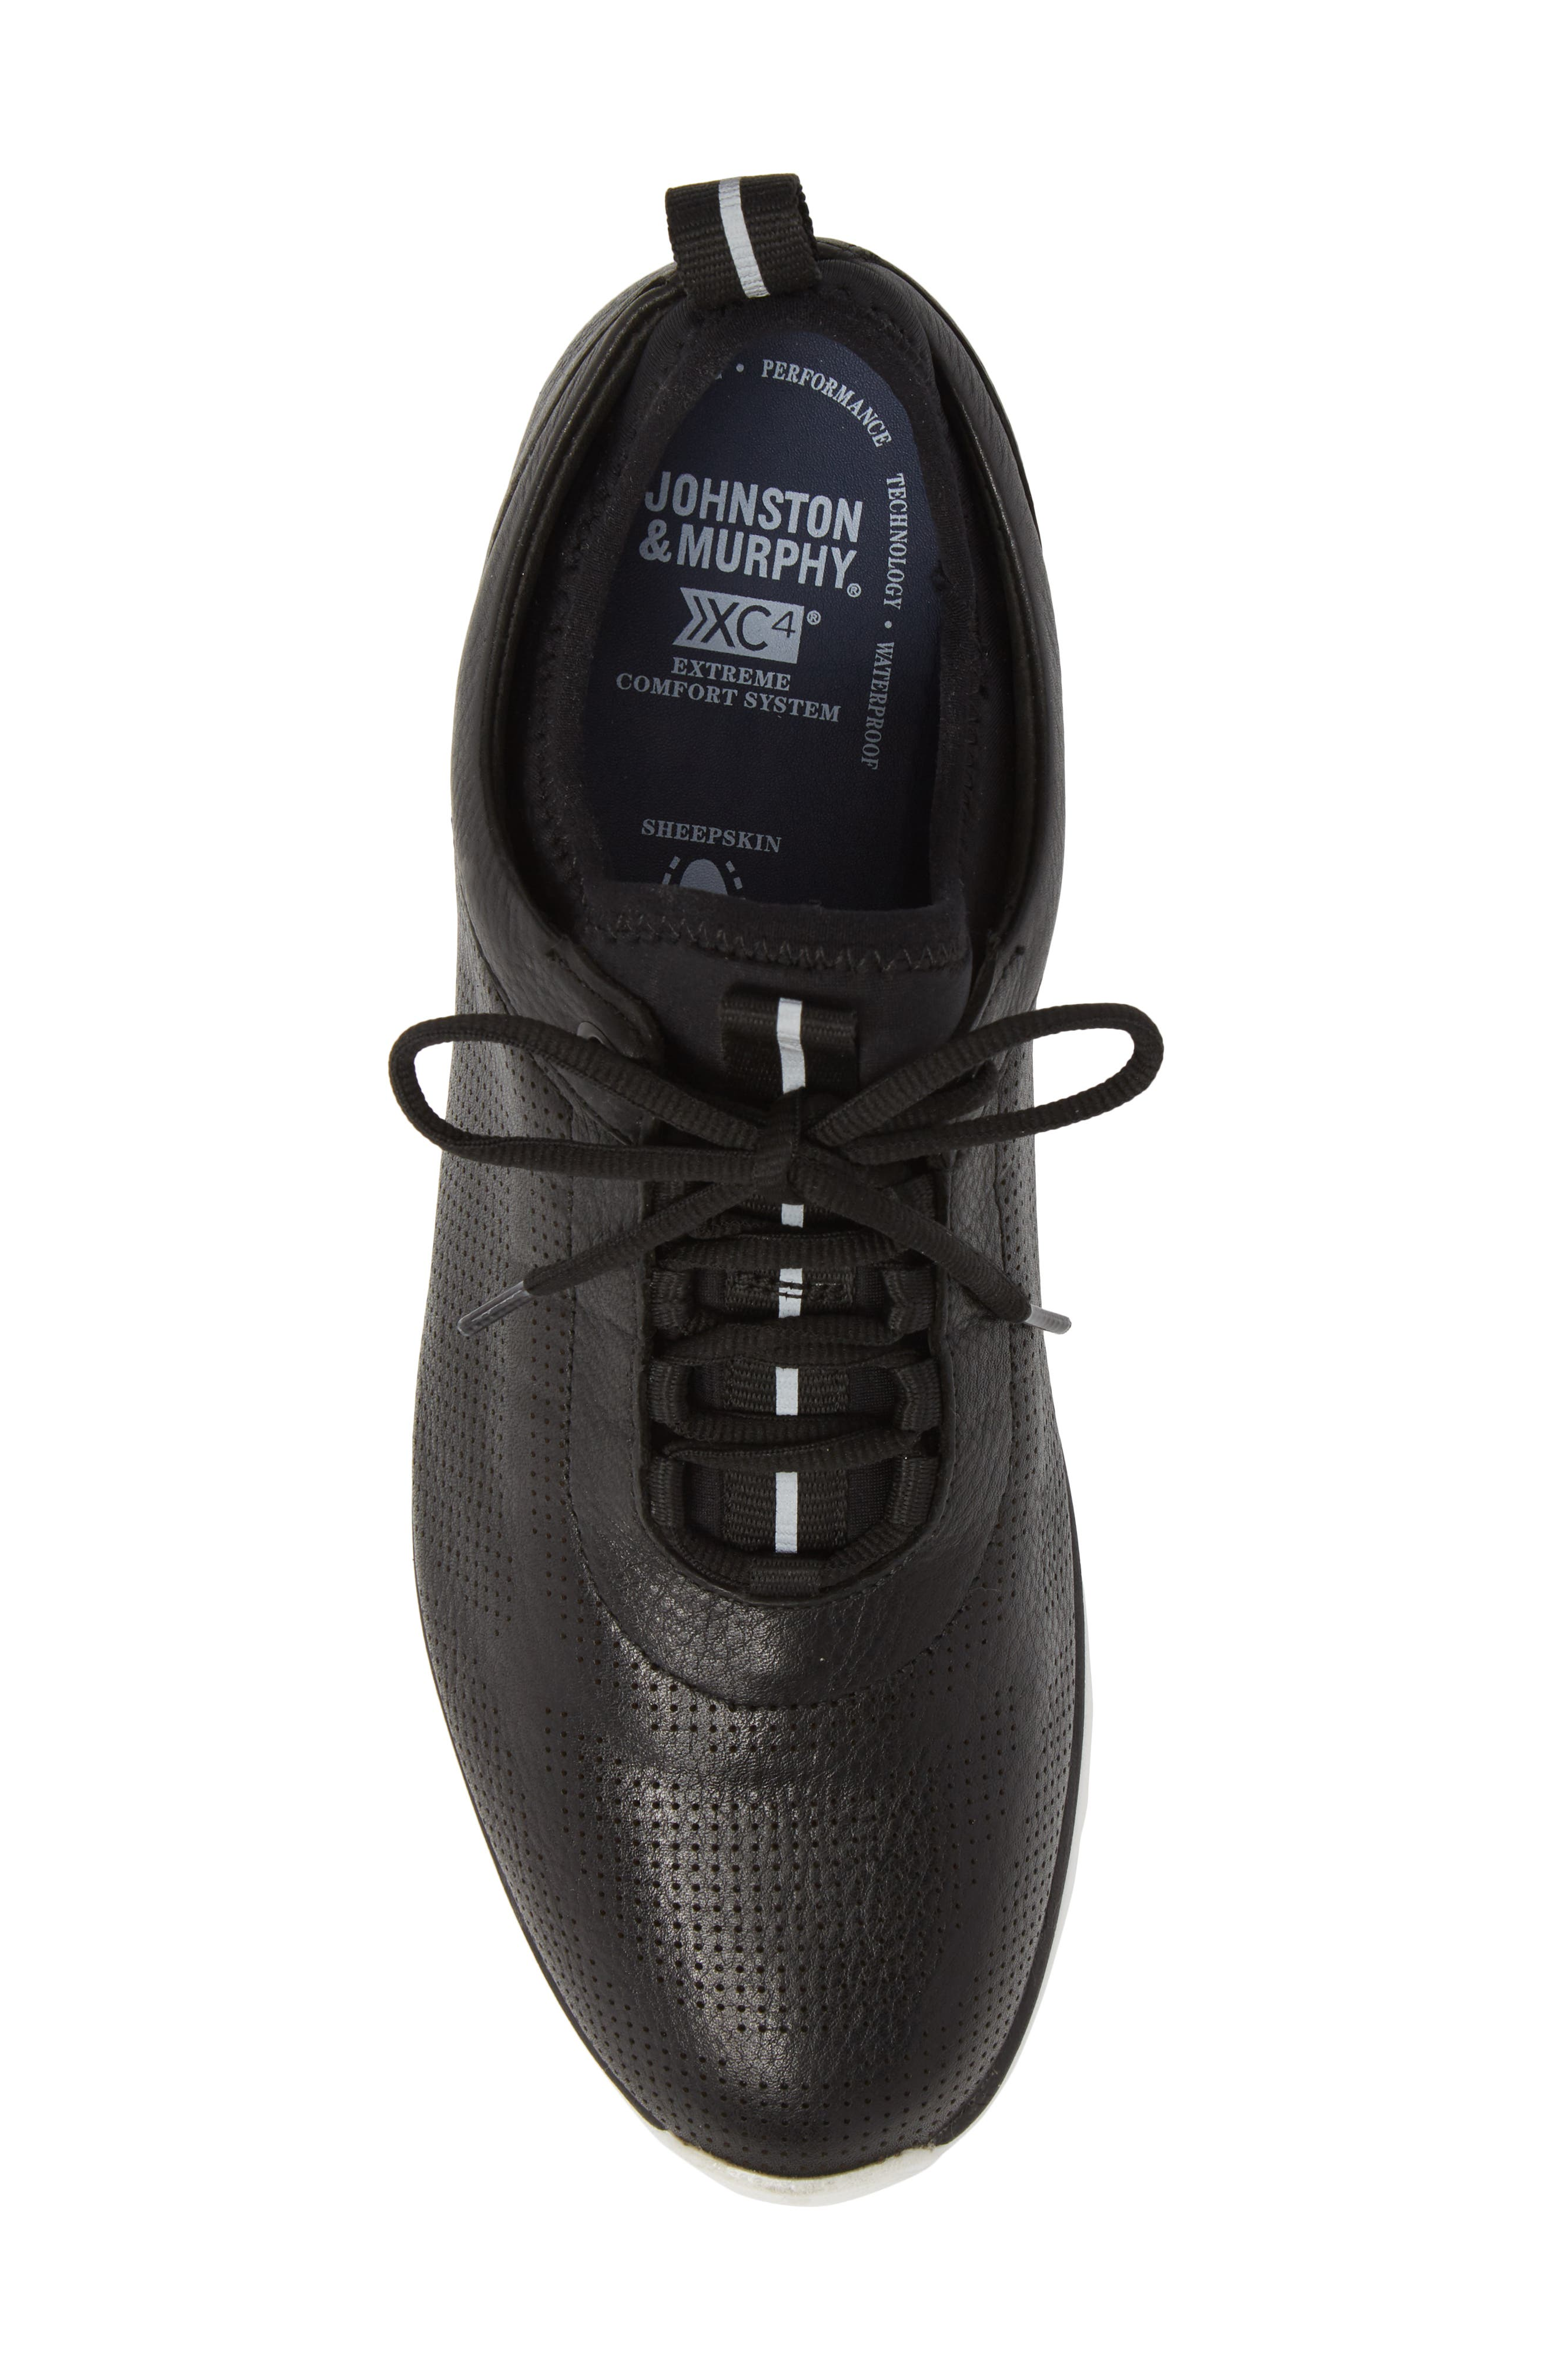 JOHNSTON & MURPHY, Prentiss XC4<sup>®</sup> Waterproof Sneaker, Alternate thumbnail 5, color, BLACK LEATHER